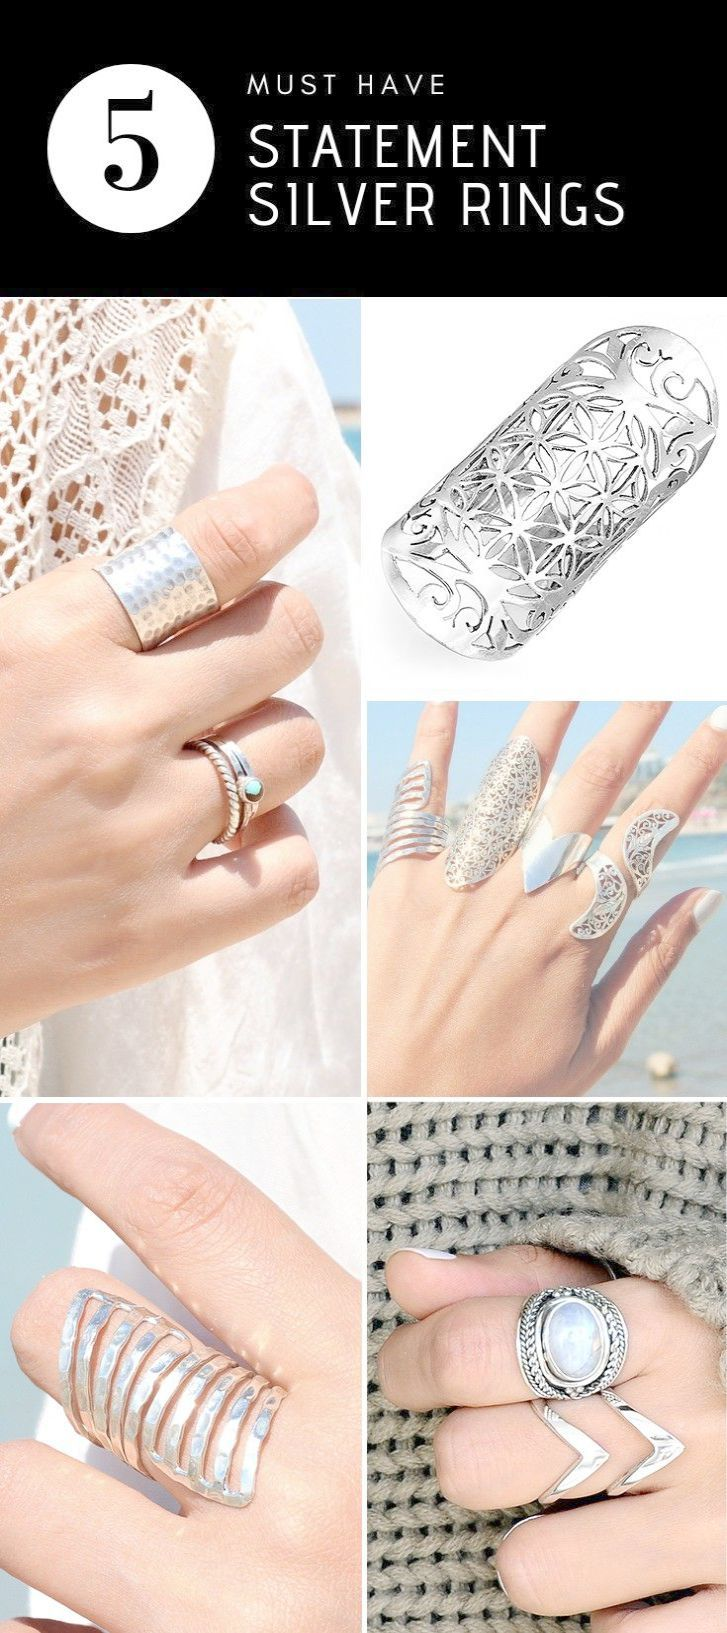 27++ Where do jewelers get their jewelry viral